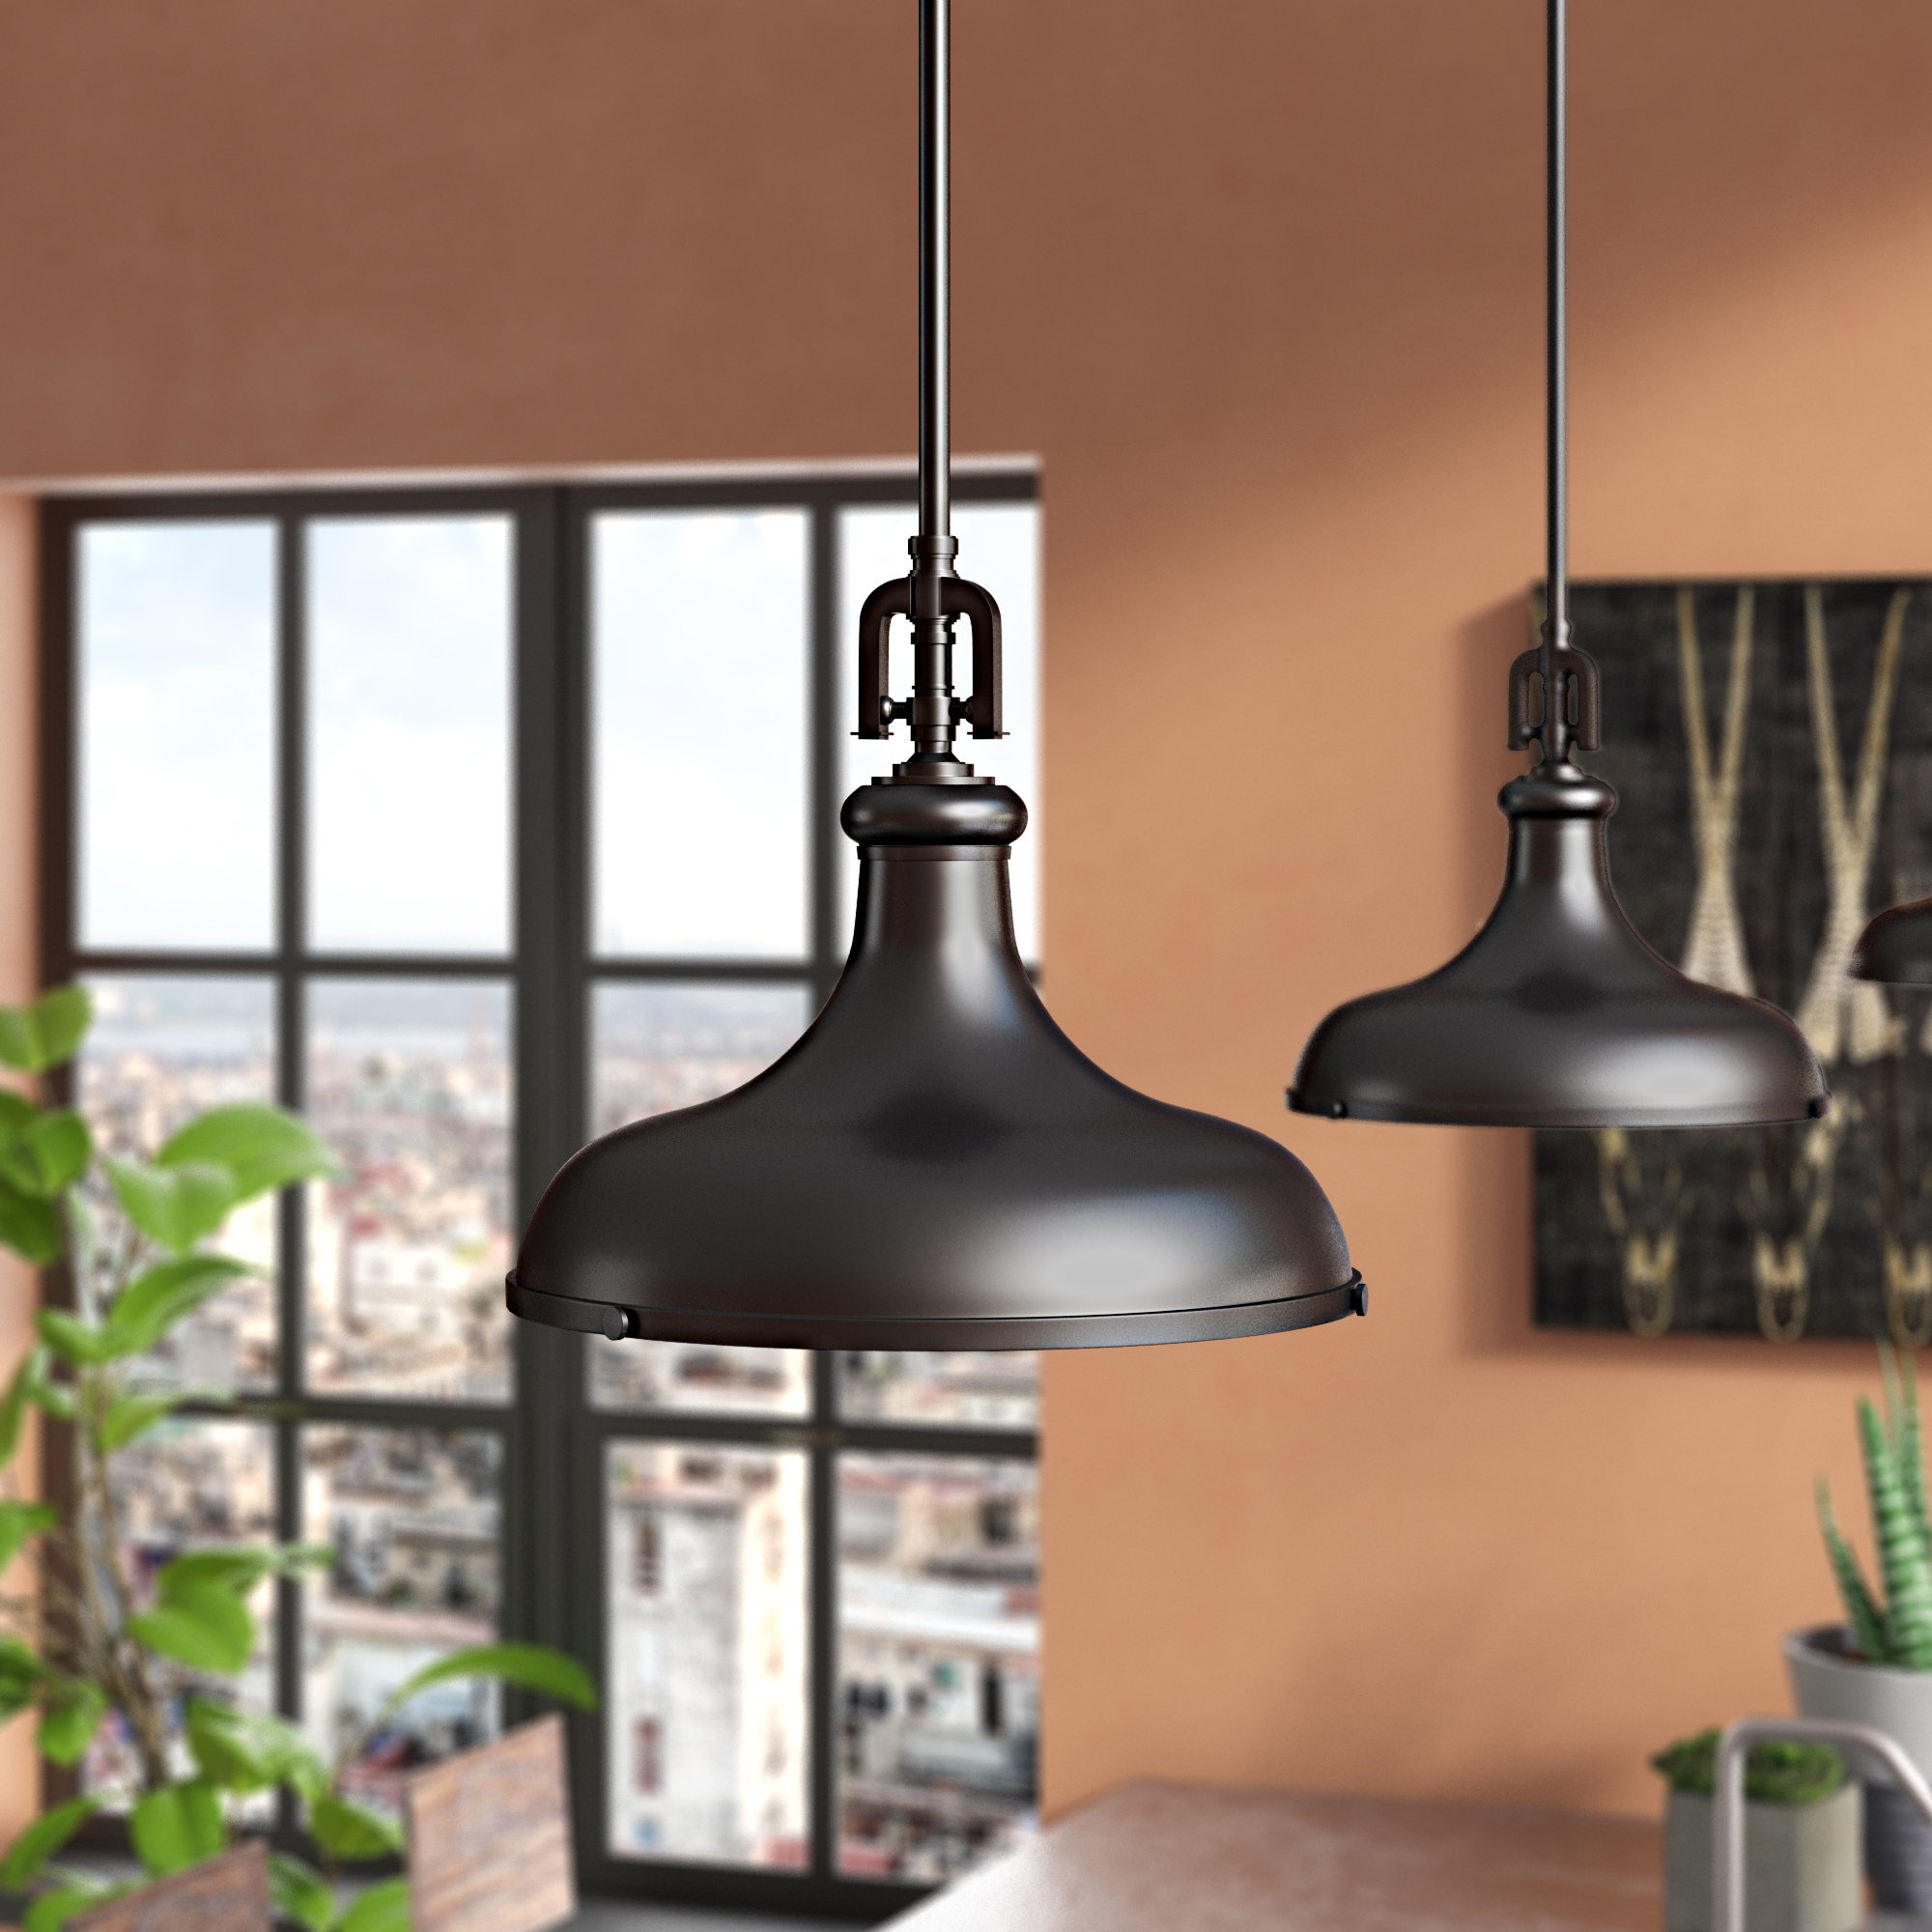 Macon 1 Light Single Dome Pendants Intended For Well Liked Rockridge 1 Light Single Dome Pendant (Gallery 6 of 20)